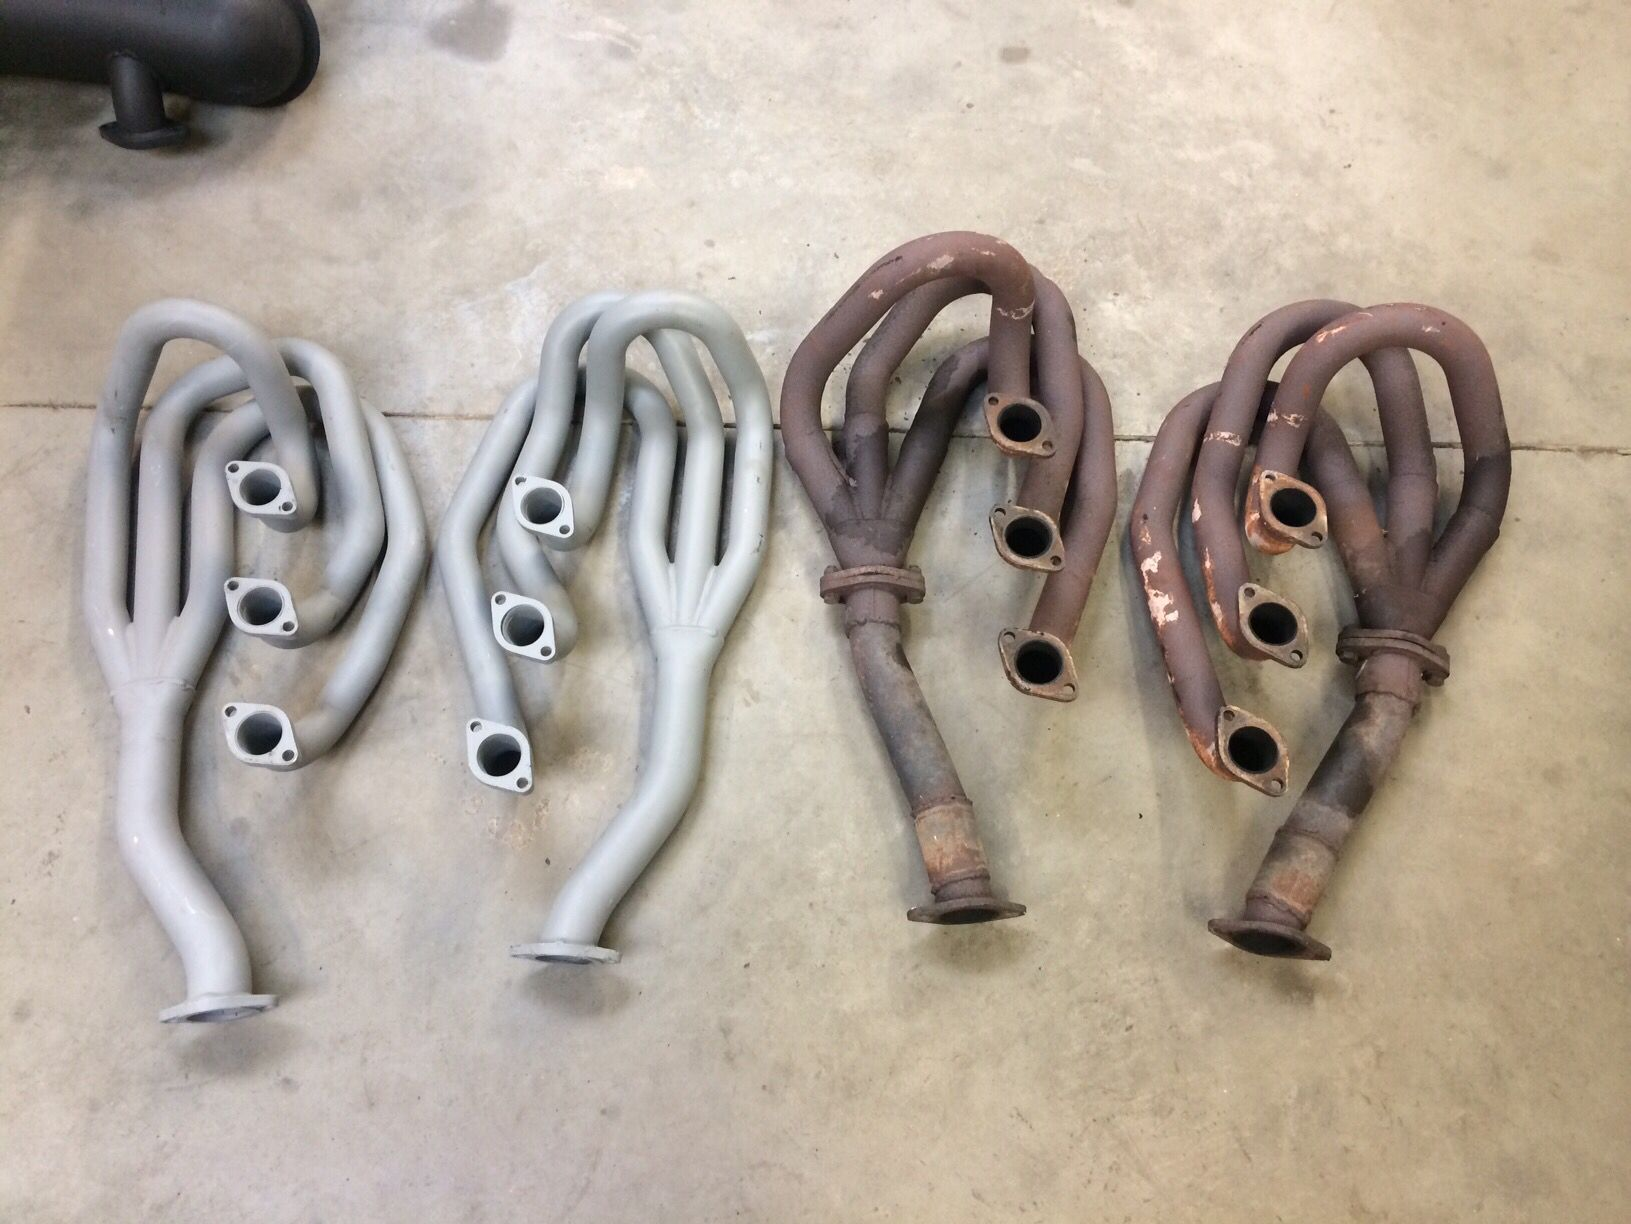 New ceramic coated exhaust manifold versus old leaky rusty ones. All original parts will be kept though.